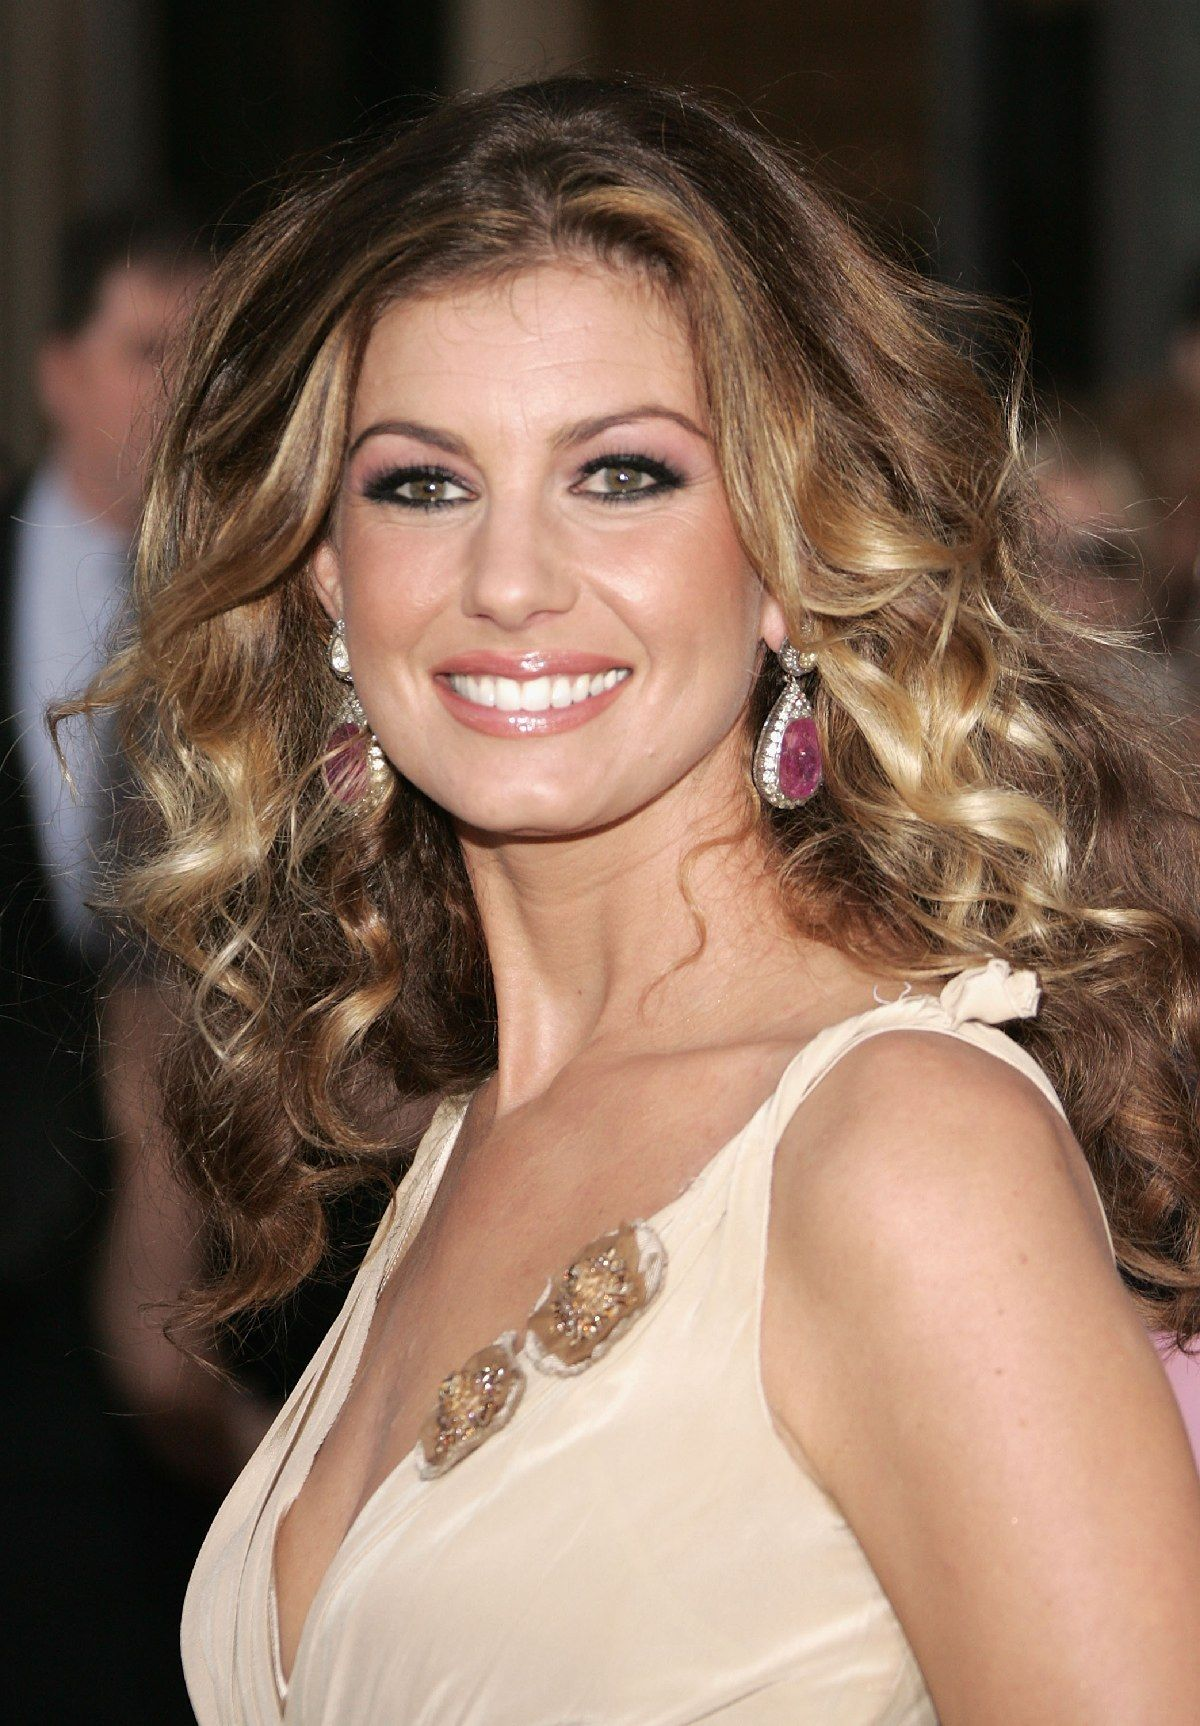 faith hill livefaith hill - there you'll be, faith hill breathe, faith hill - there you'll be mp3, faith hill there you'll be перевод, faith hill – breathe перевод, faith hill wiki, faith hill - it matters to me, faith hill youtube, faith hill breathe mp3, faith hill where are you christmas, faith hill 2017, faith hill mp3, faith hill vk, faith hill itunes, faith hill cry lyrics, faith hill live, faith hill you will be mine, faith hill photo, faith hill 2002, faith hill parents